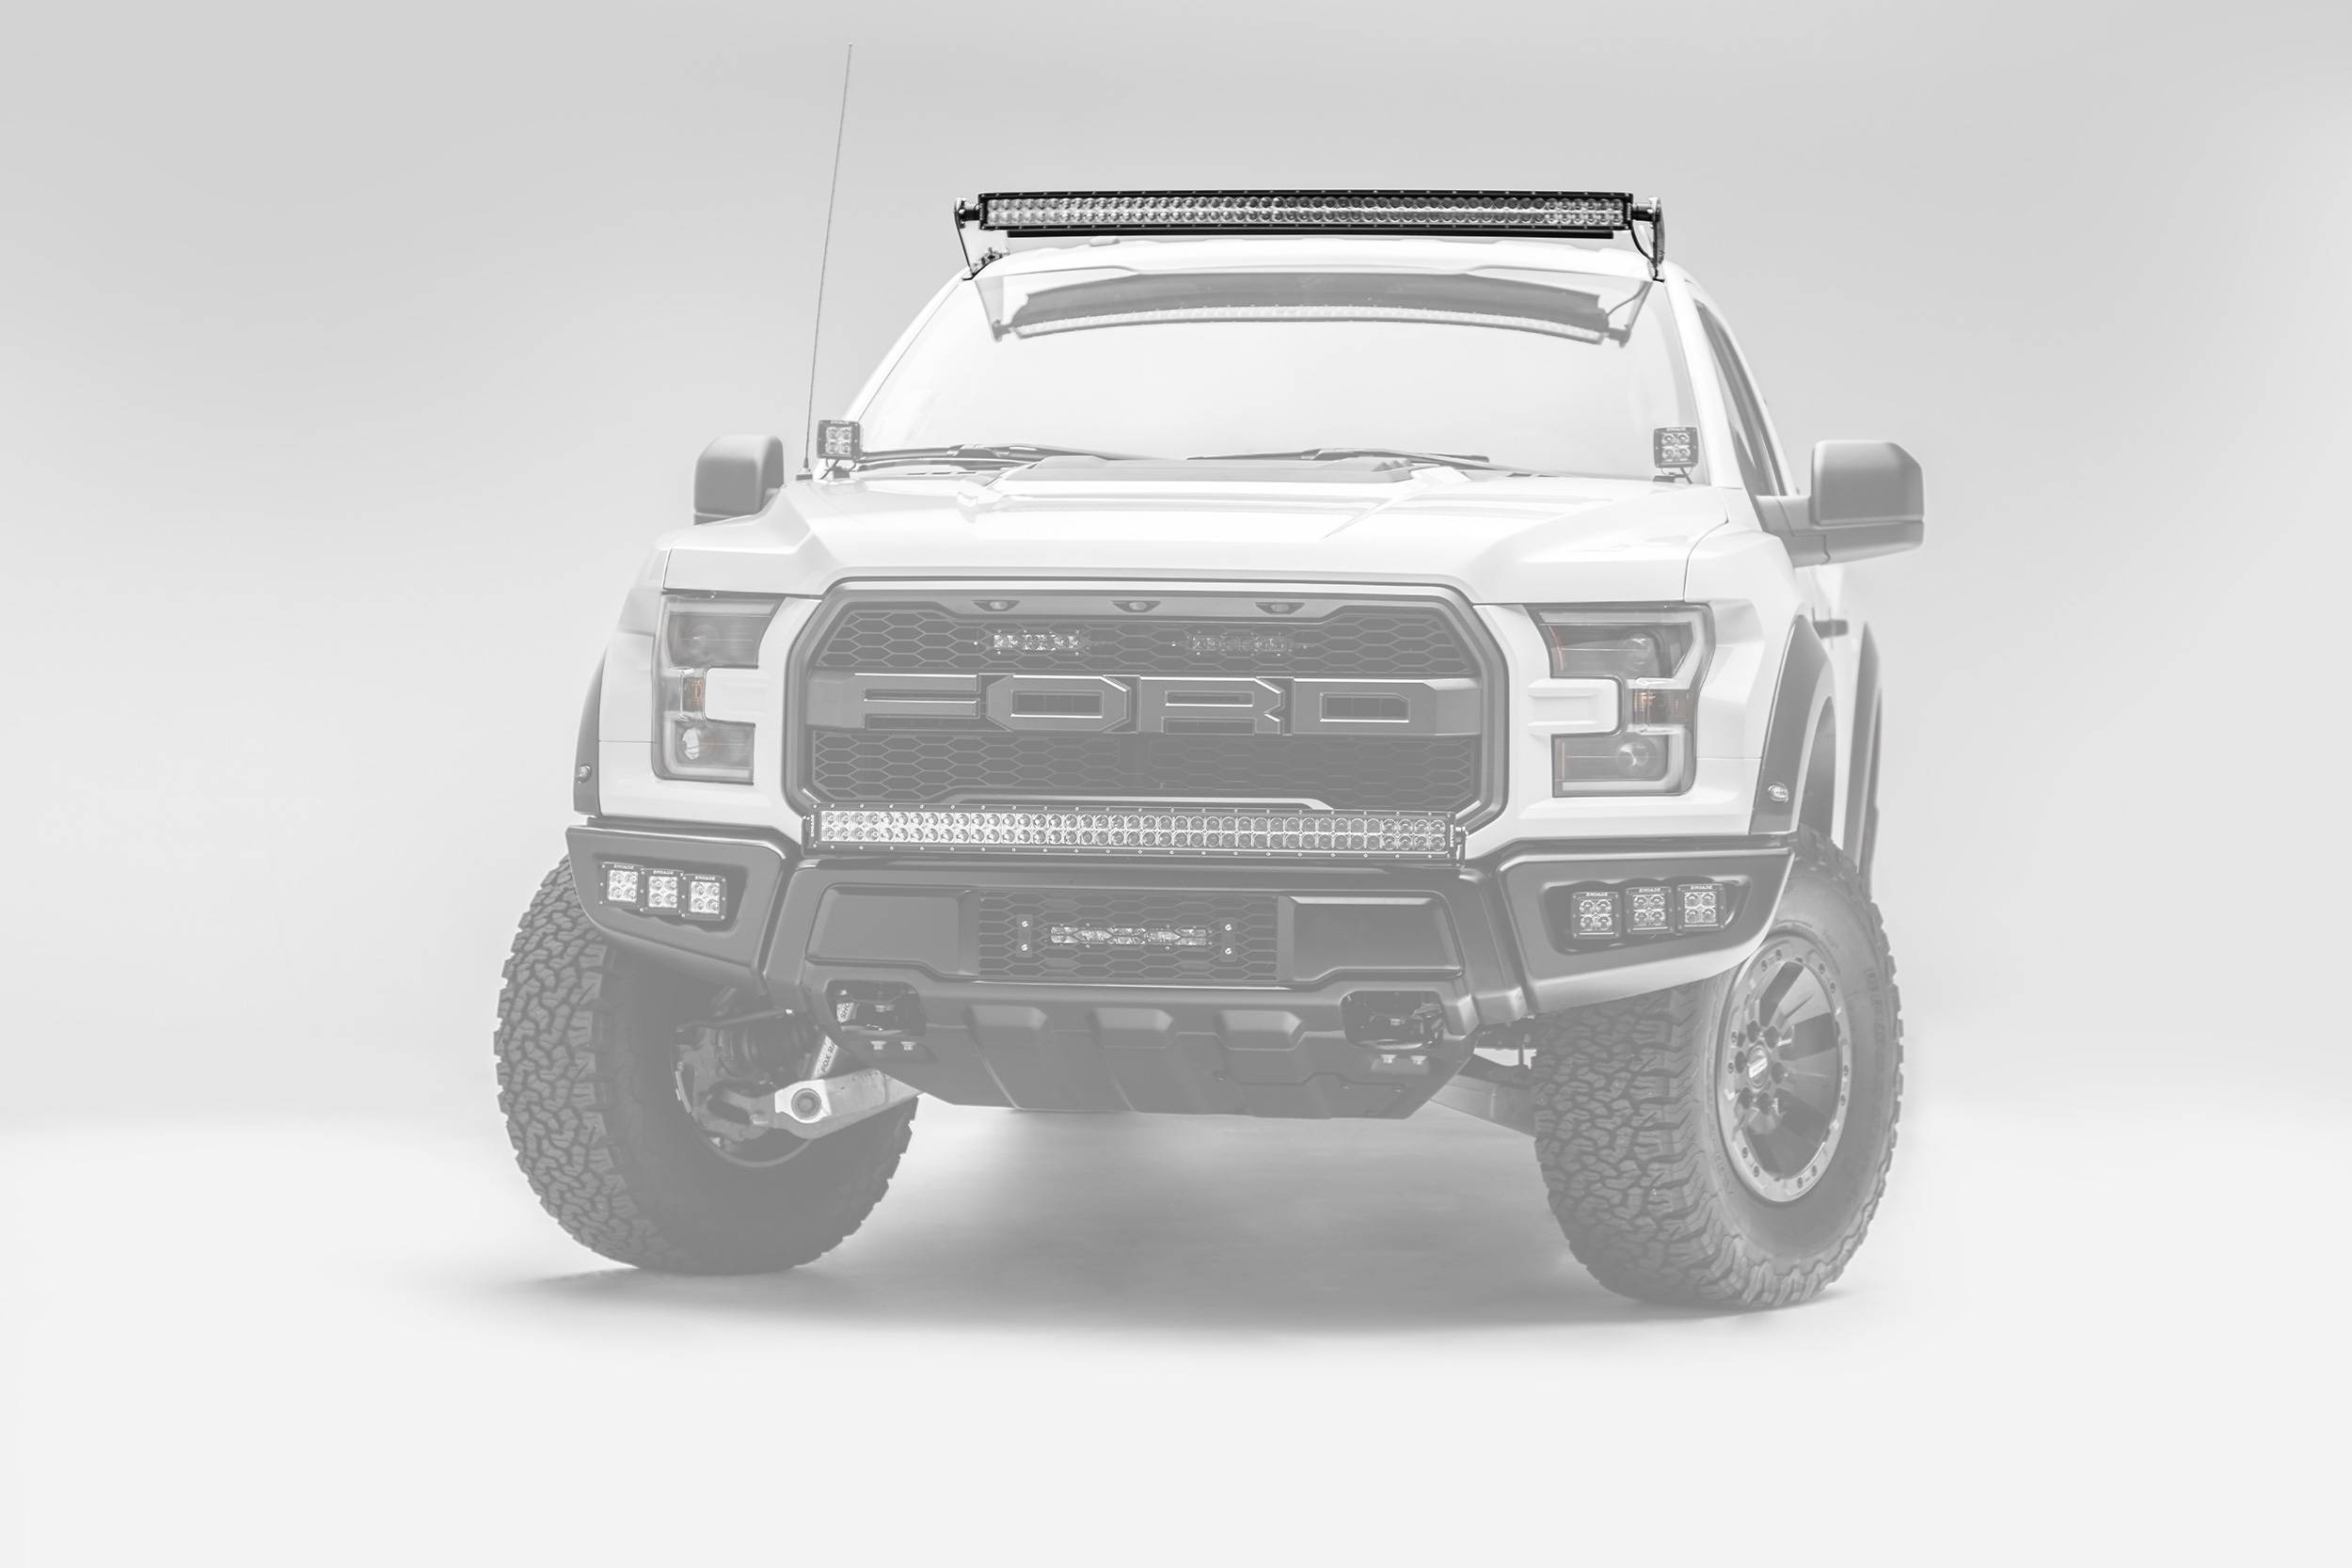 2015-2019 Ford F-150, Raptor Front Roof LED Bracket to mount (1) 52 Inch Straight LED Light Bar - PN #Z335162